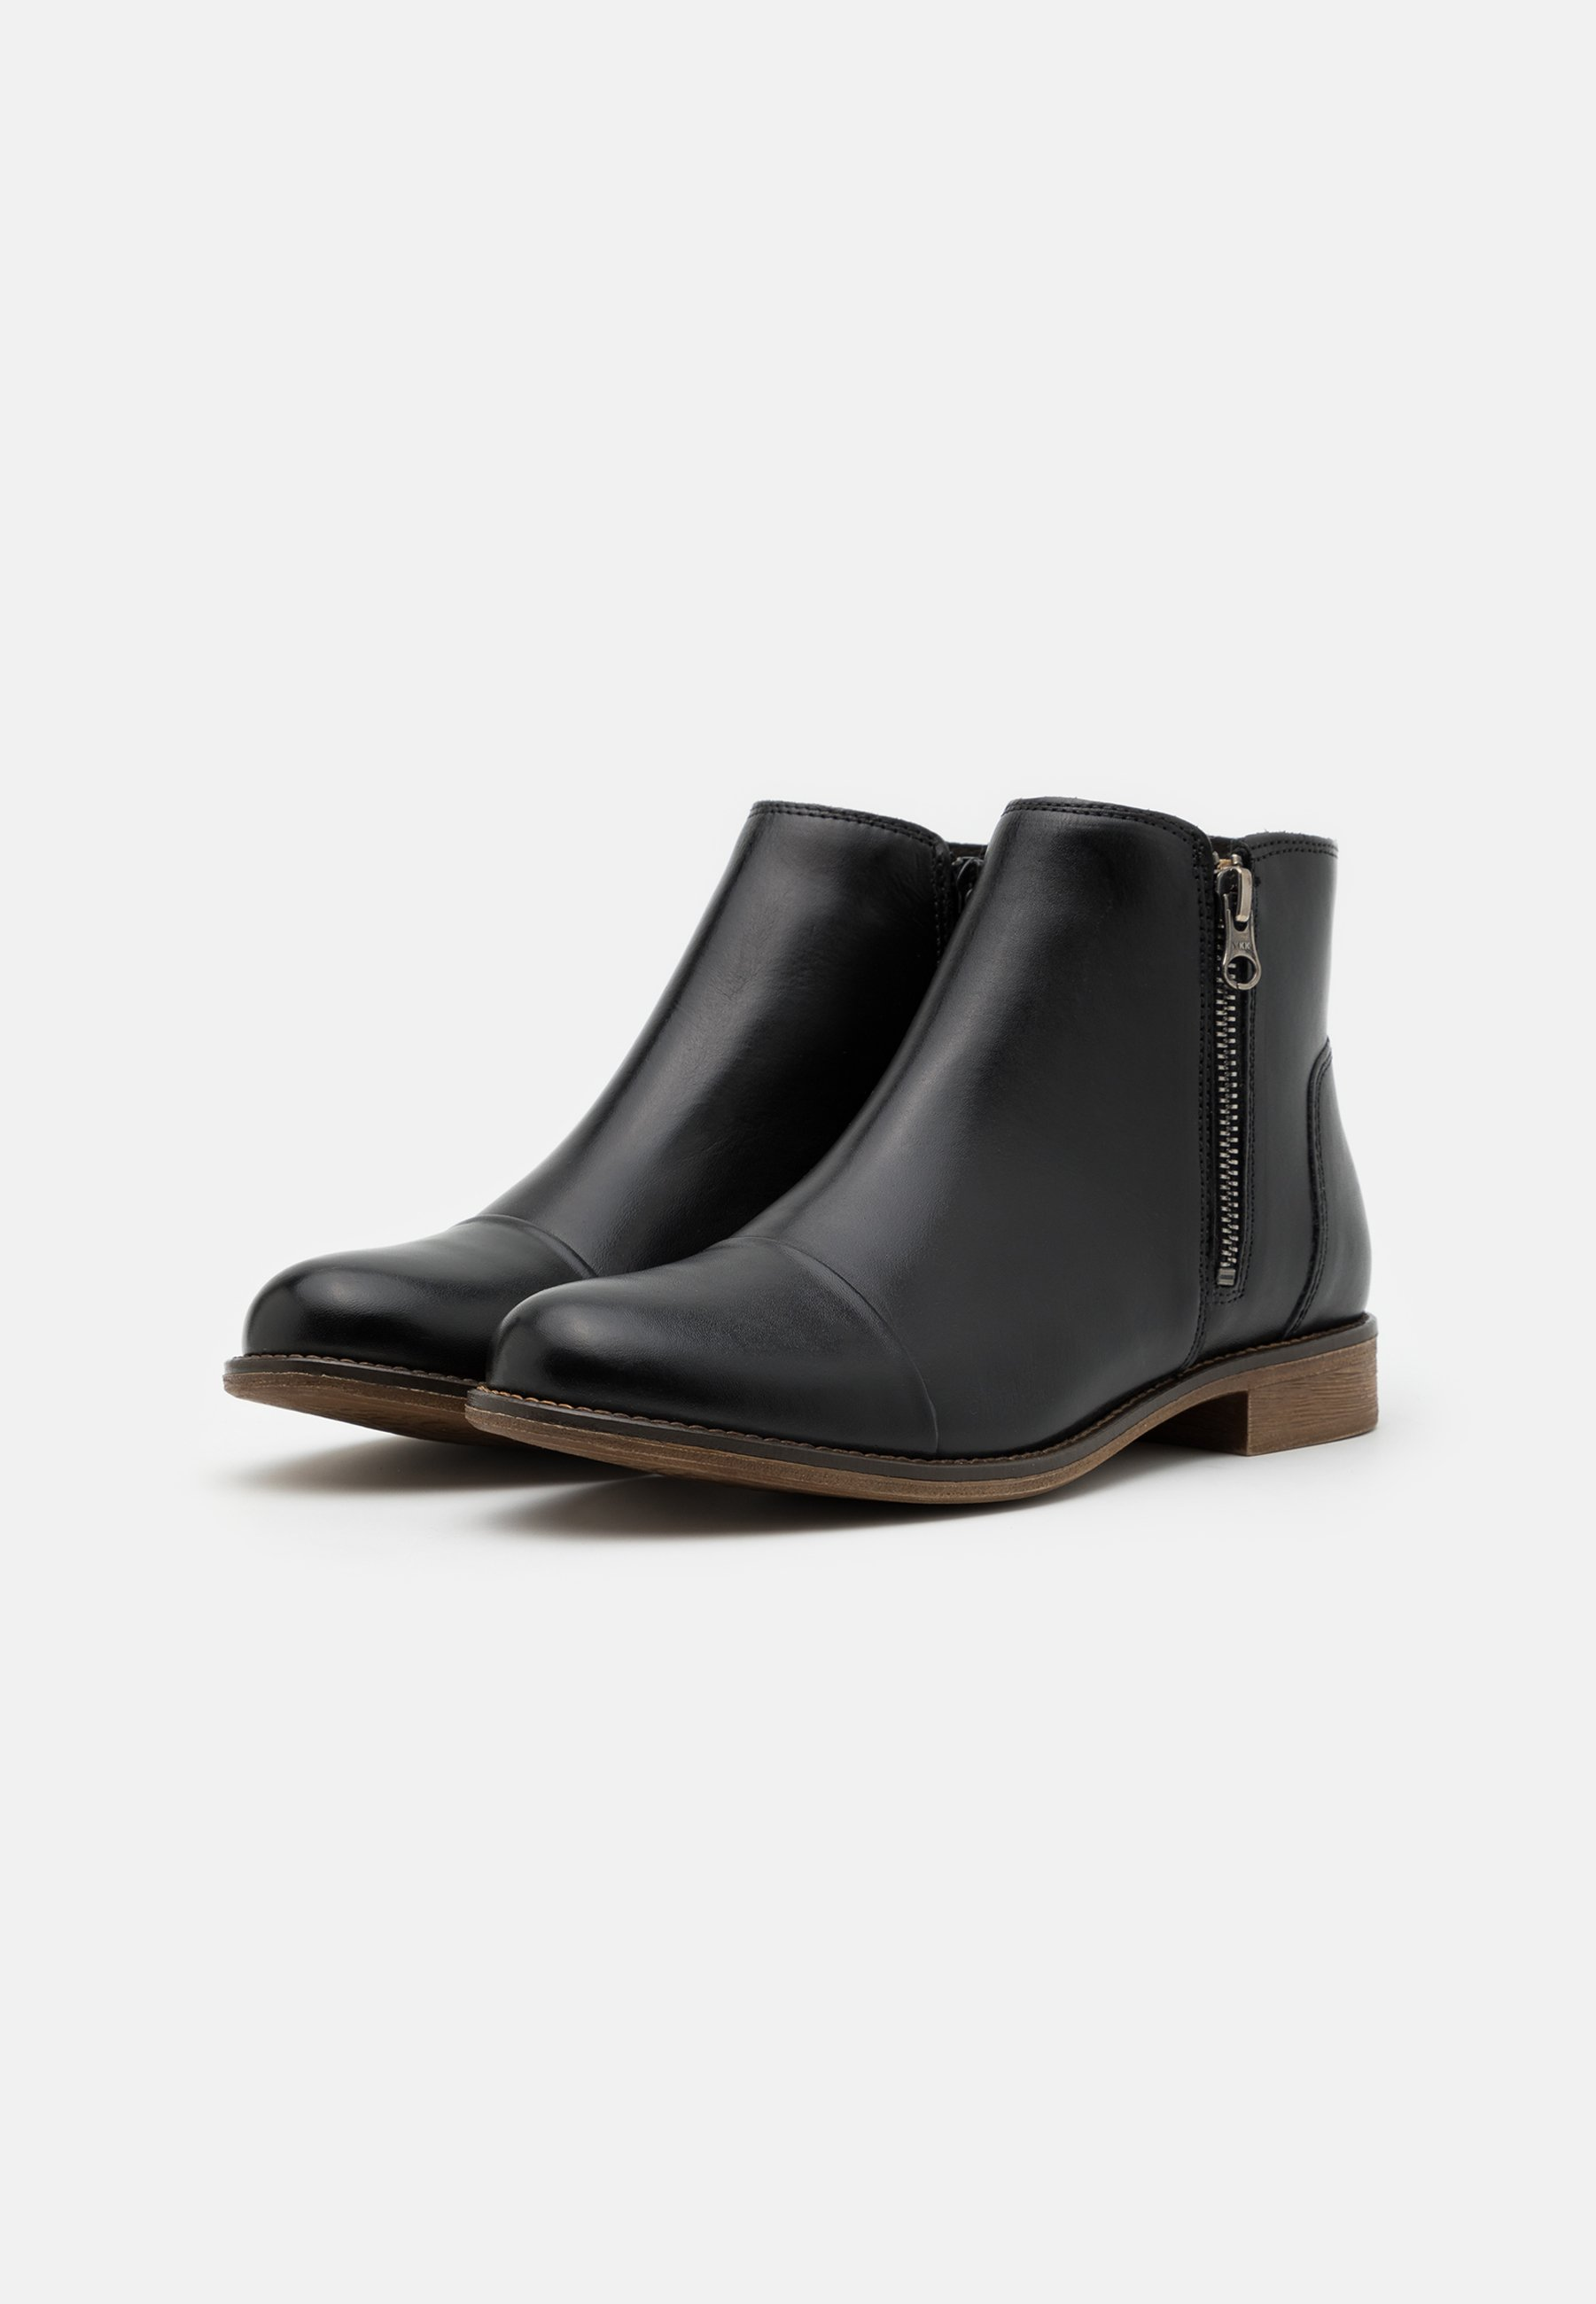 100% Guaranteed Designer Women's Shoes Anna Field LEATHER Ankle boots black a7DcNJJRE sCLijGou9